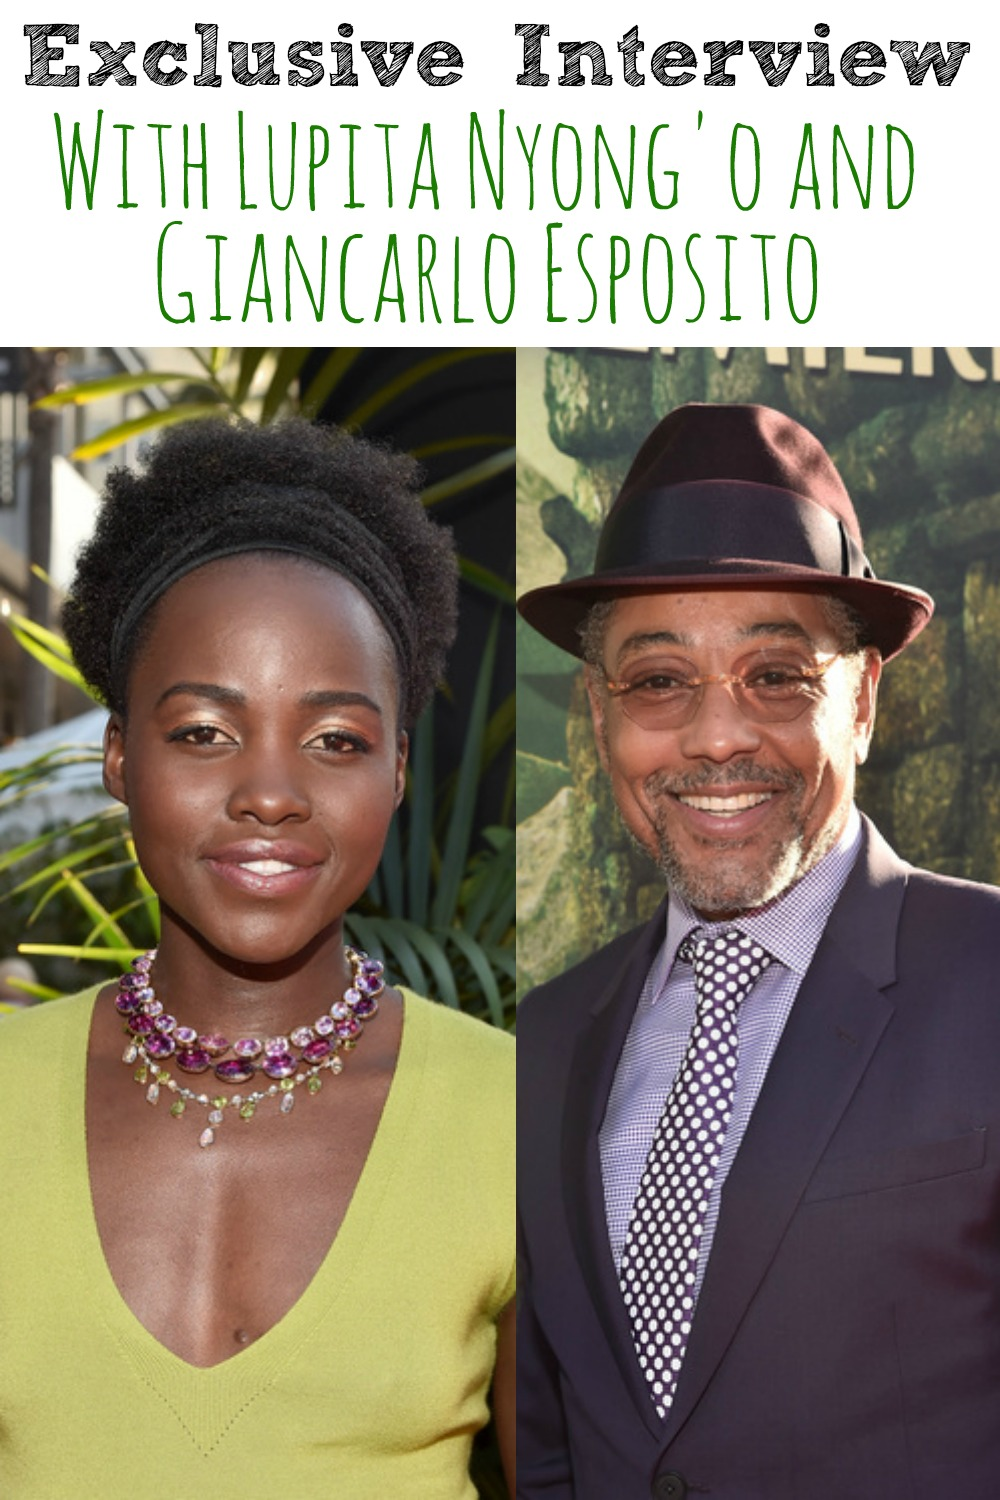 Exclusive Interview with Lupita Nyongo and Giancarlo Esposito